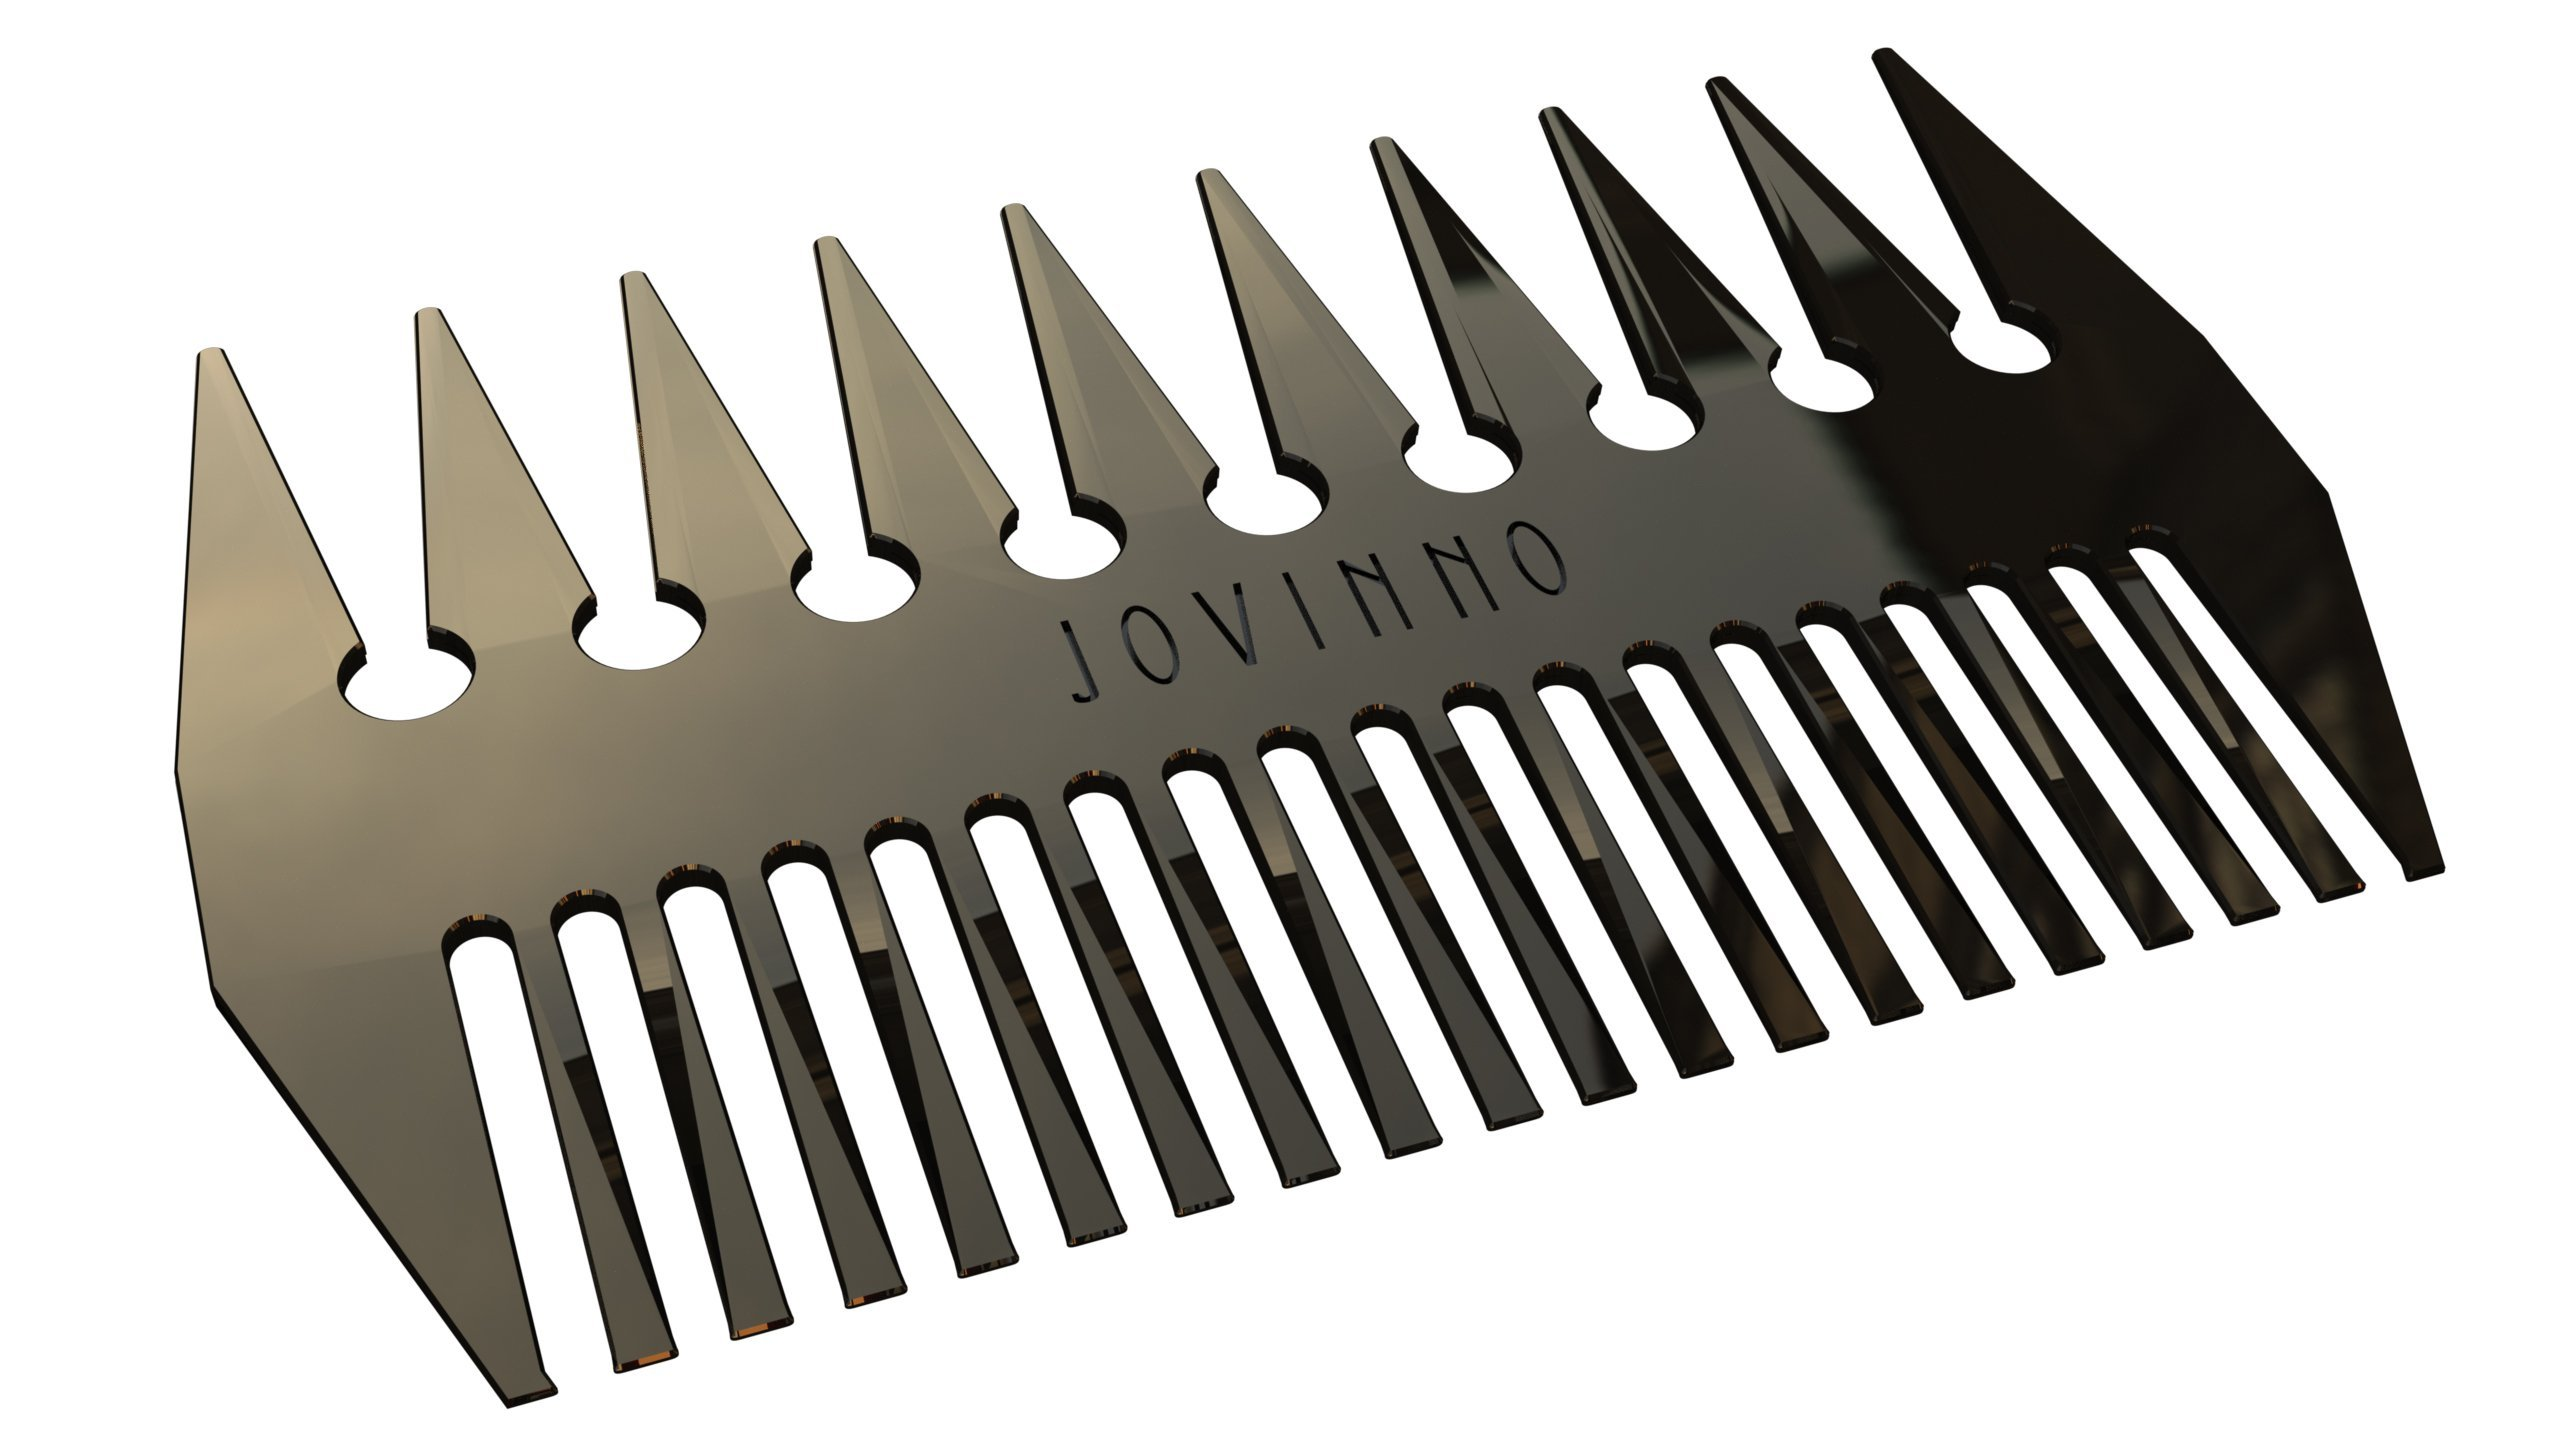 Jovinno Hair Styling Hair & Beard Comb Premium Quality Luxury All Metal Dual-Sided Wide + Fine Tooth Designed To Promote A Unique Hair Contour